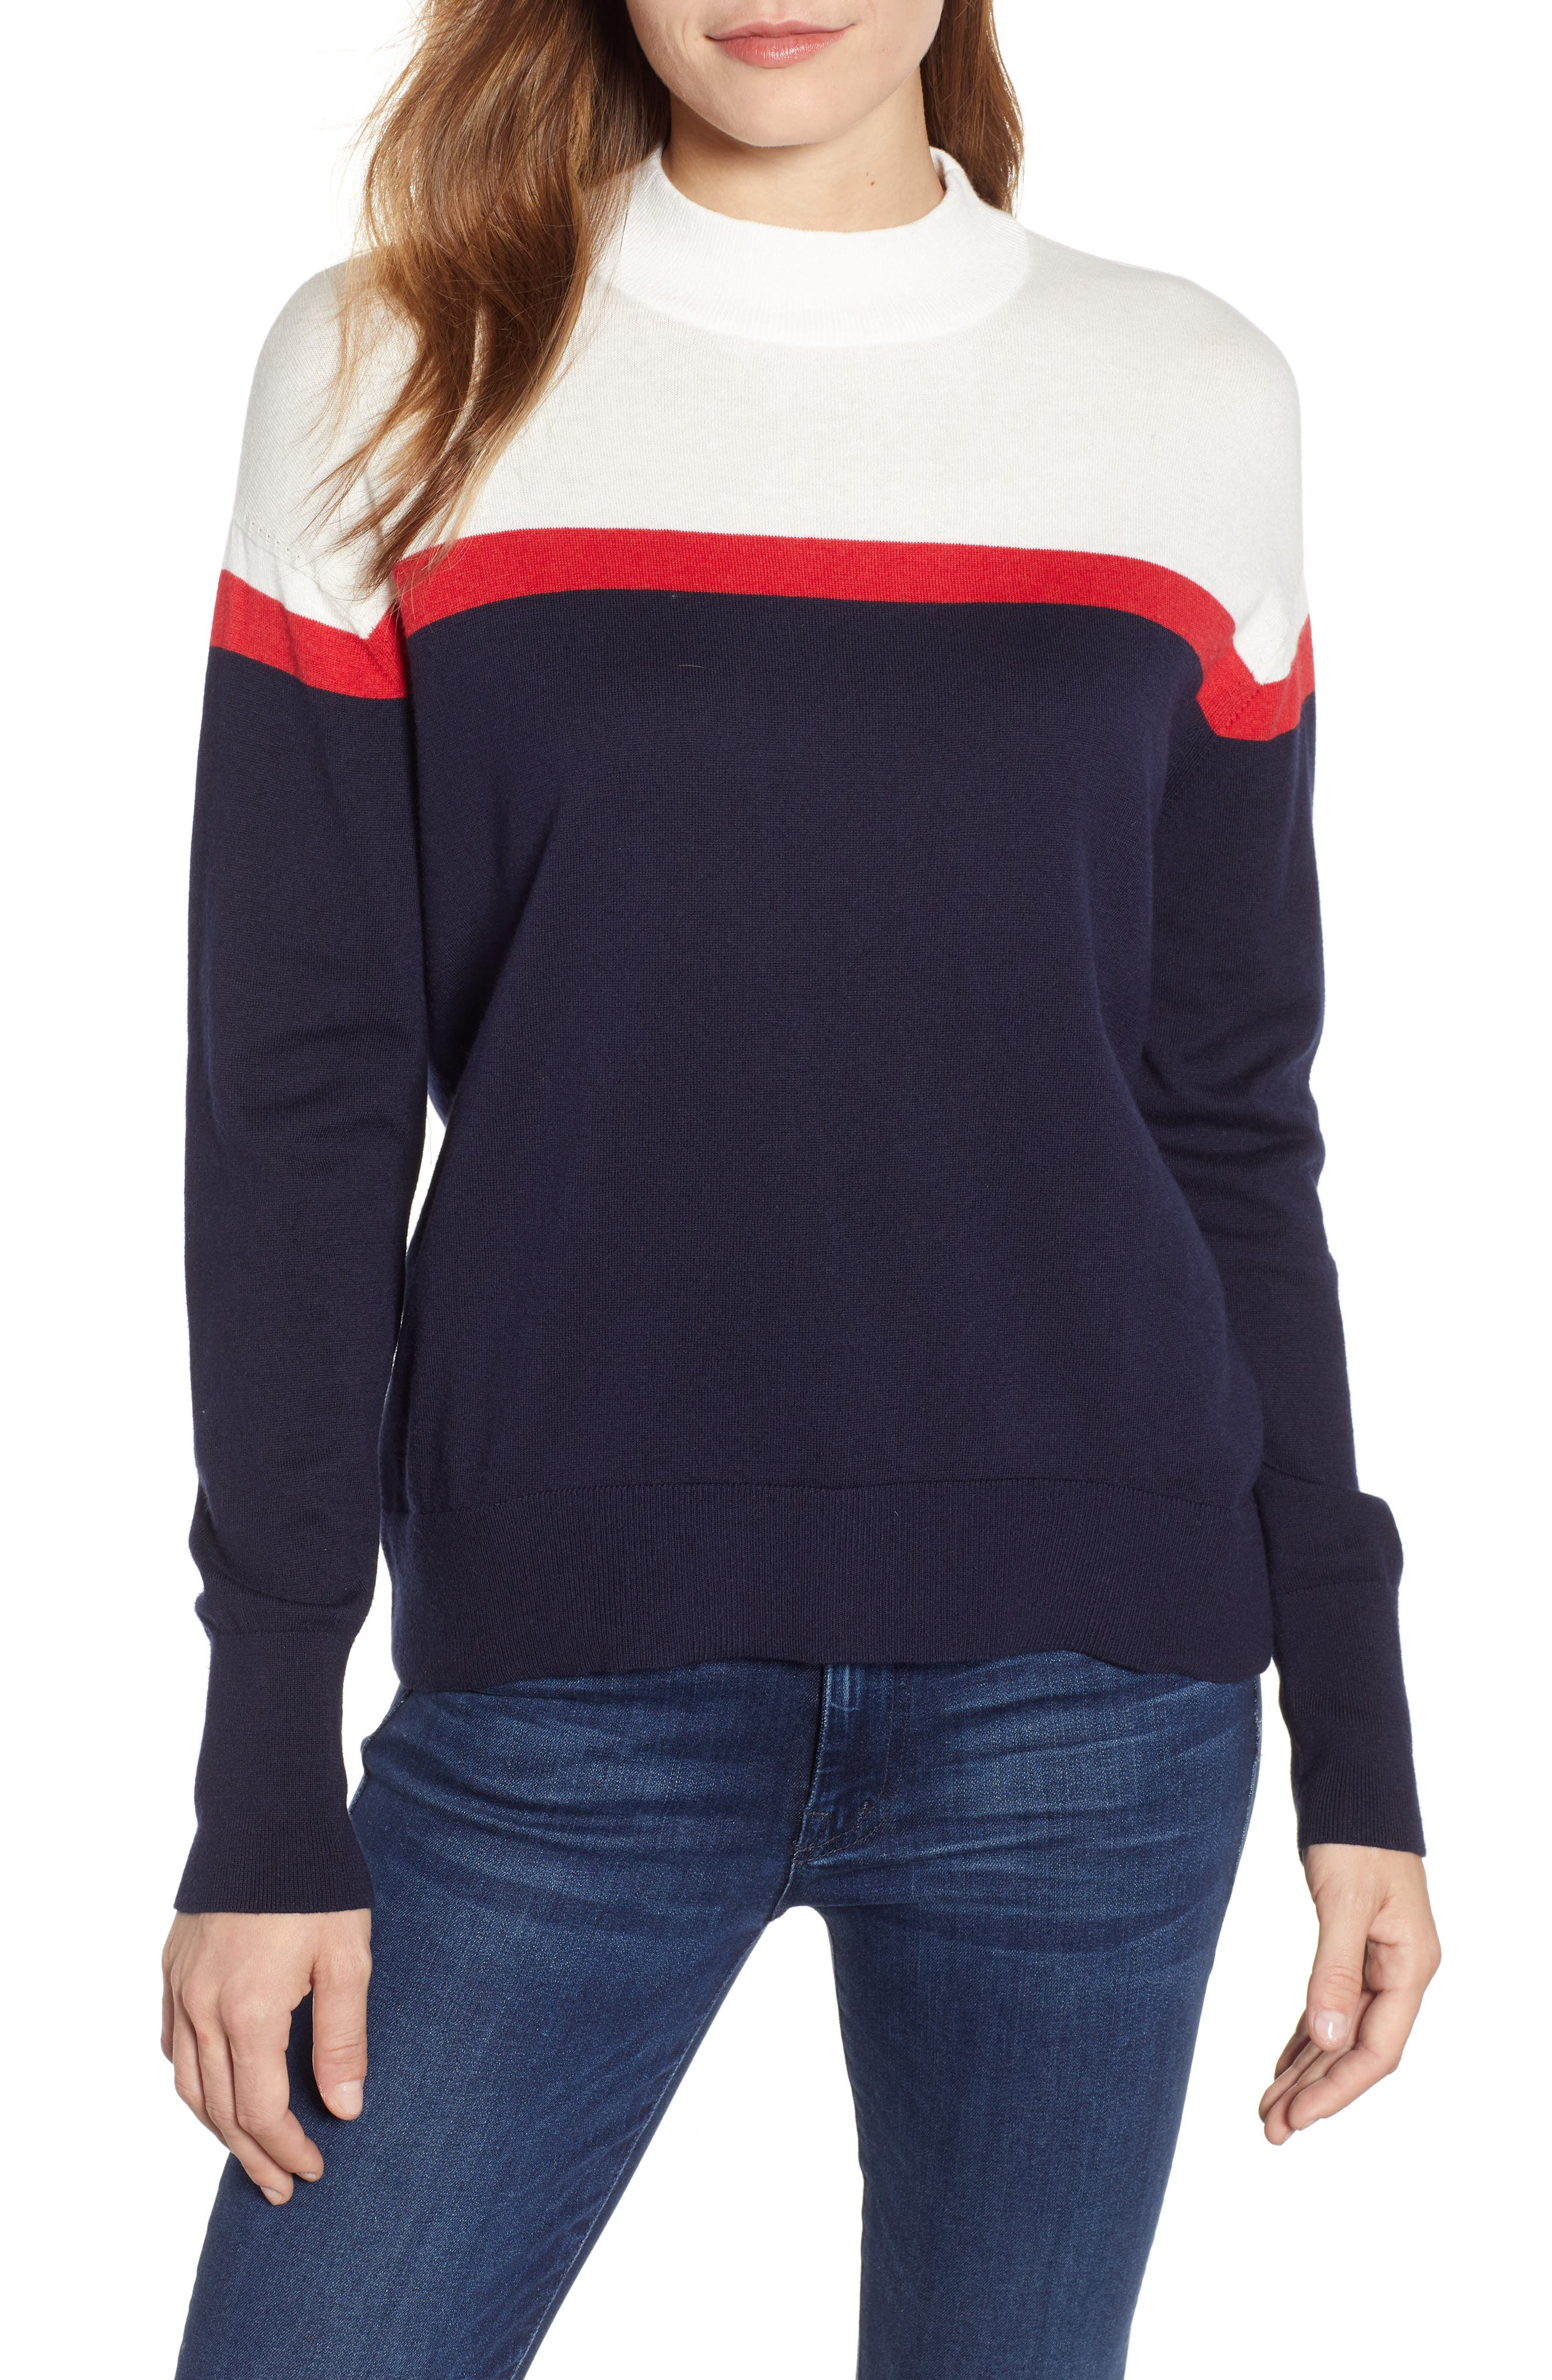 VELVET BY GRAHAM & SPENCER, Stripe Mock Neck Cotton & Cashmere Sweater, Main thumbnail 1, color, MULTI